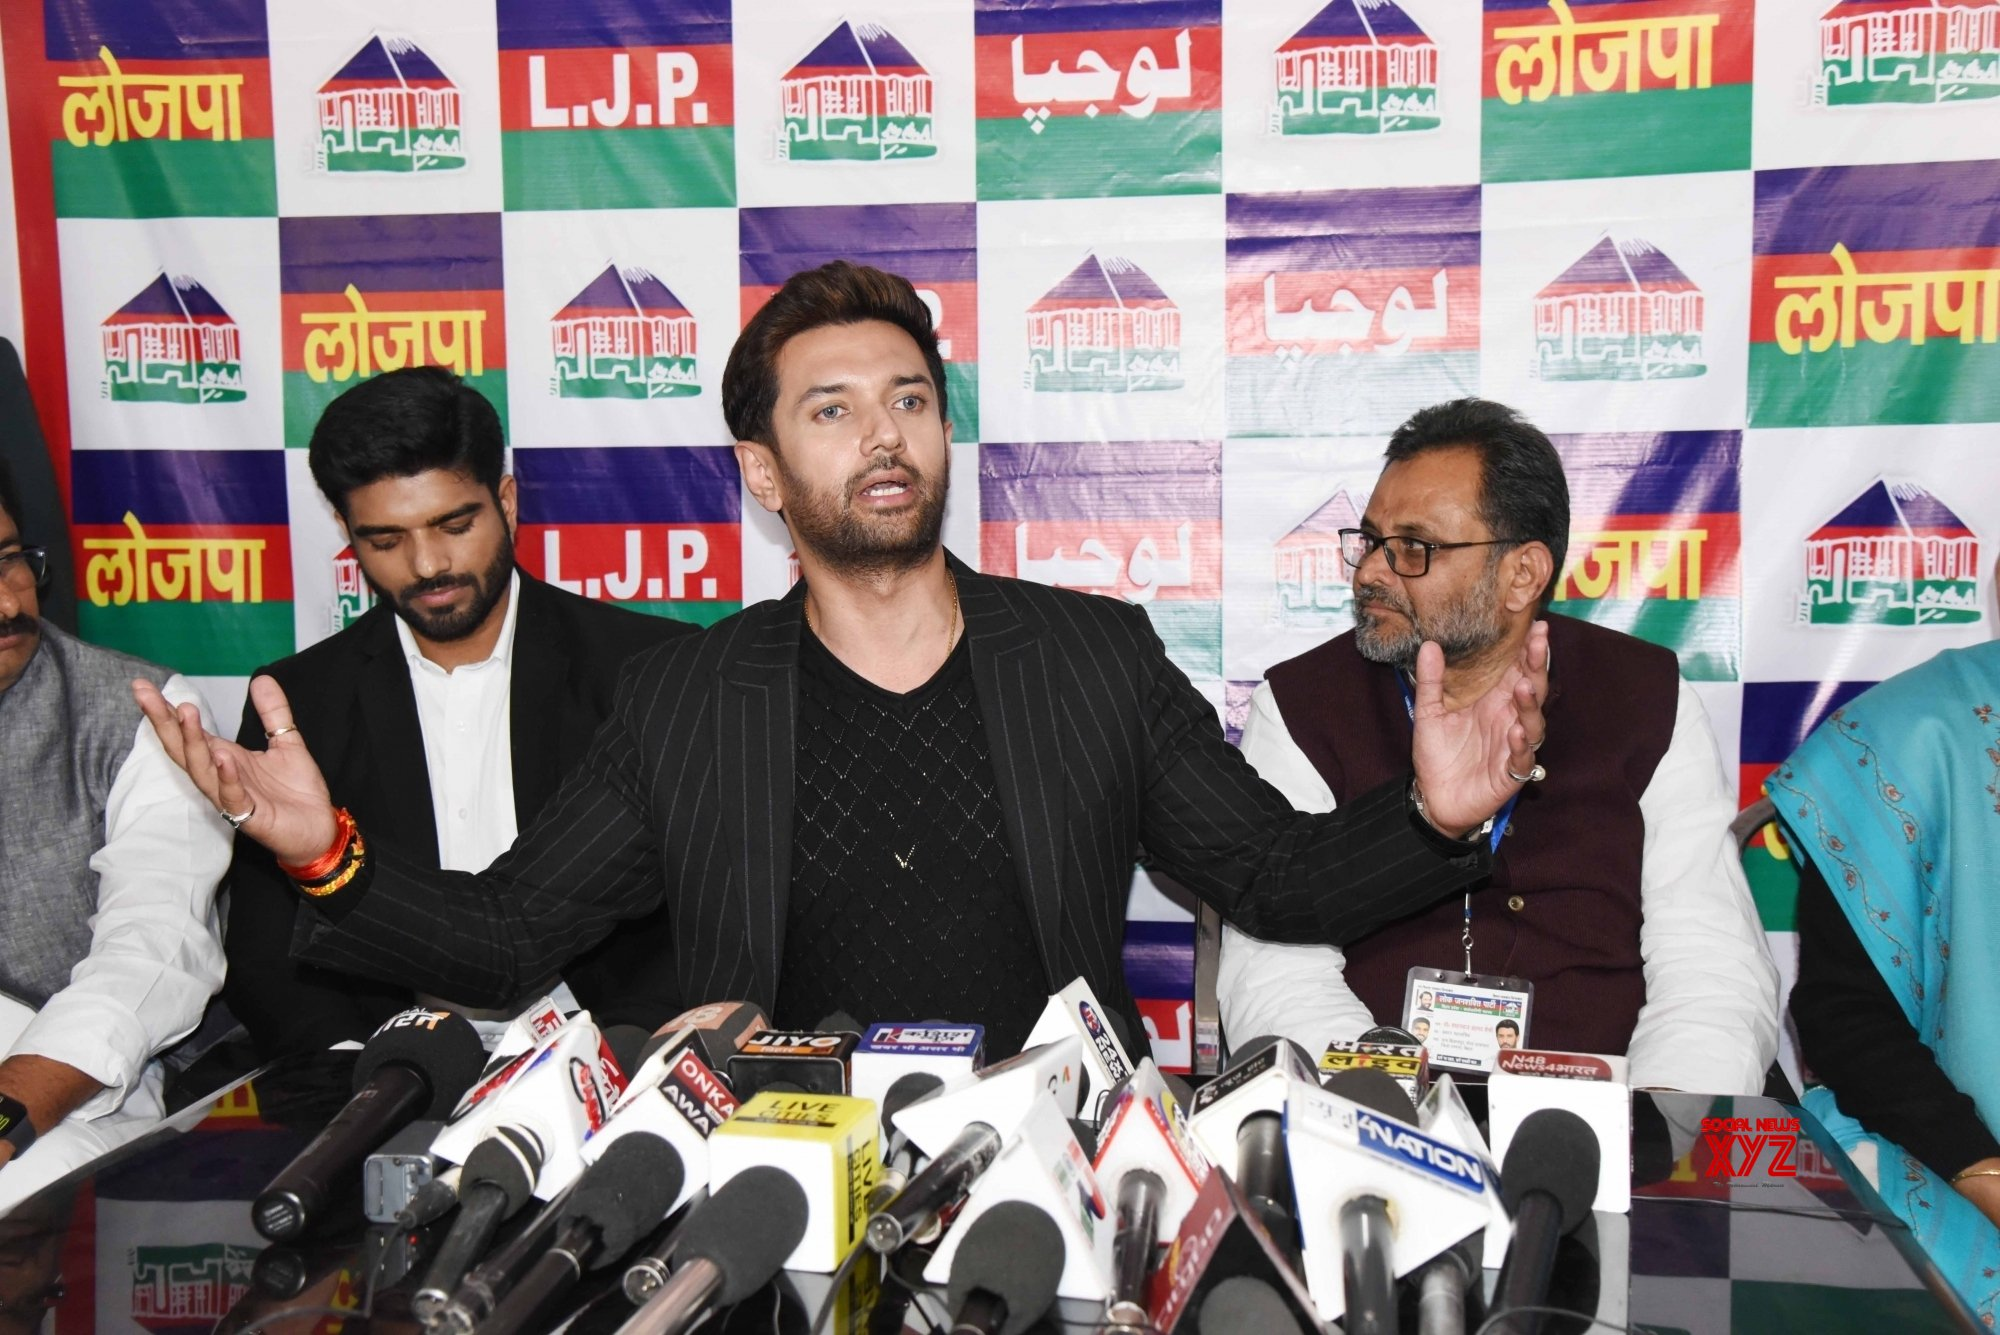 Patna: Chirag Paswan's press conference #Gallery